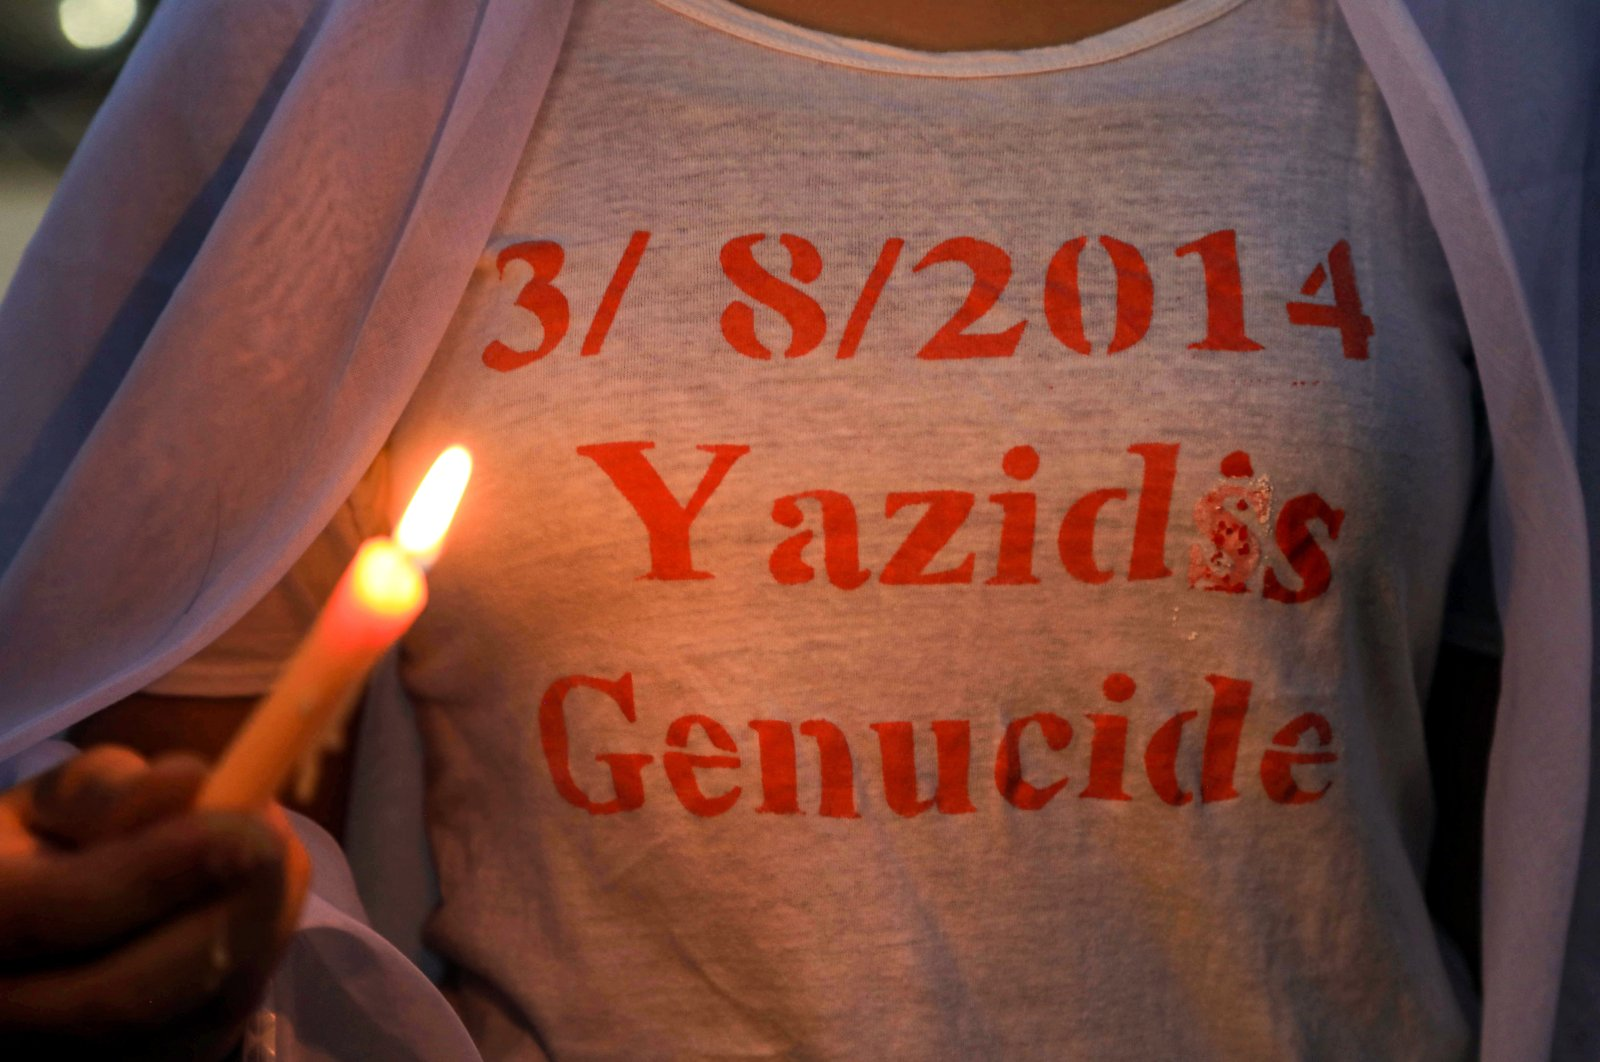 Iraqi Yazidis attend a candle-lit vigil in the Sharya area, some 15 km (9 miles) from the northern city of Dohuk in the autonomous Iraqi Kurdistan Regional Government (KRG) region, marking the sixth anniversary of the Daesh attack on the Yazidi community in the northwestern Sinjar district of Iraq, Aug. 3, 2020. (AFP Photo)